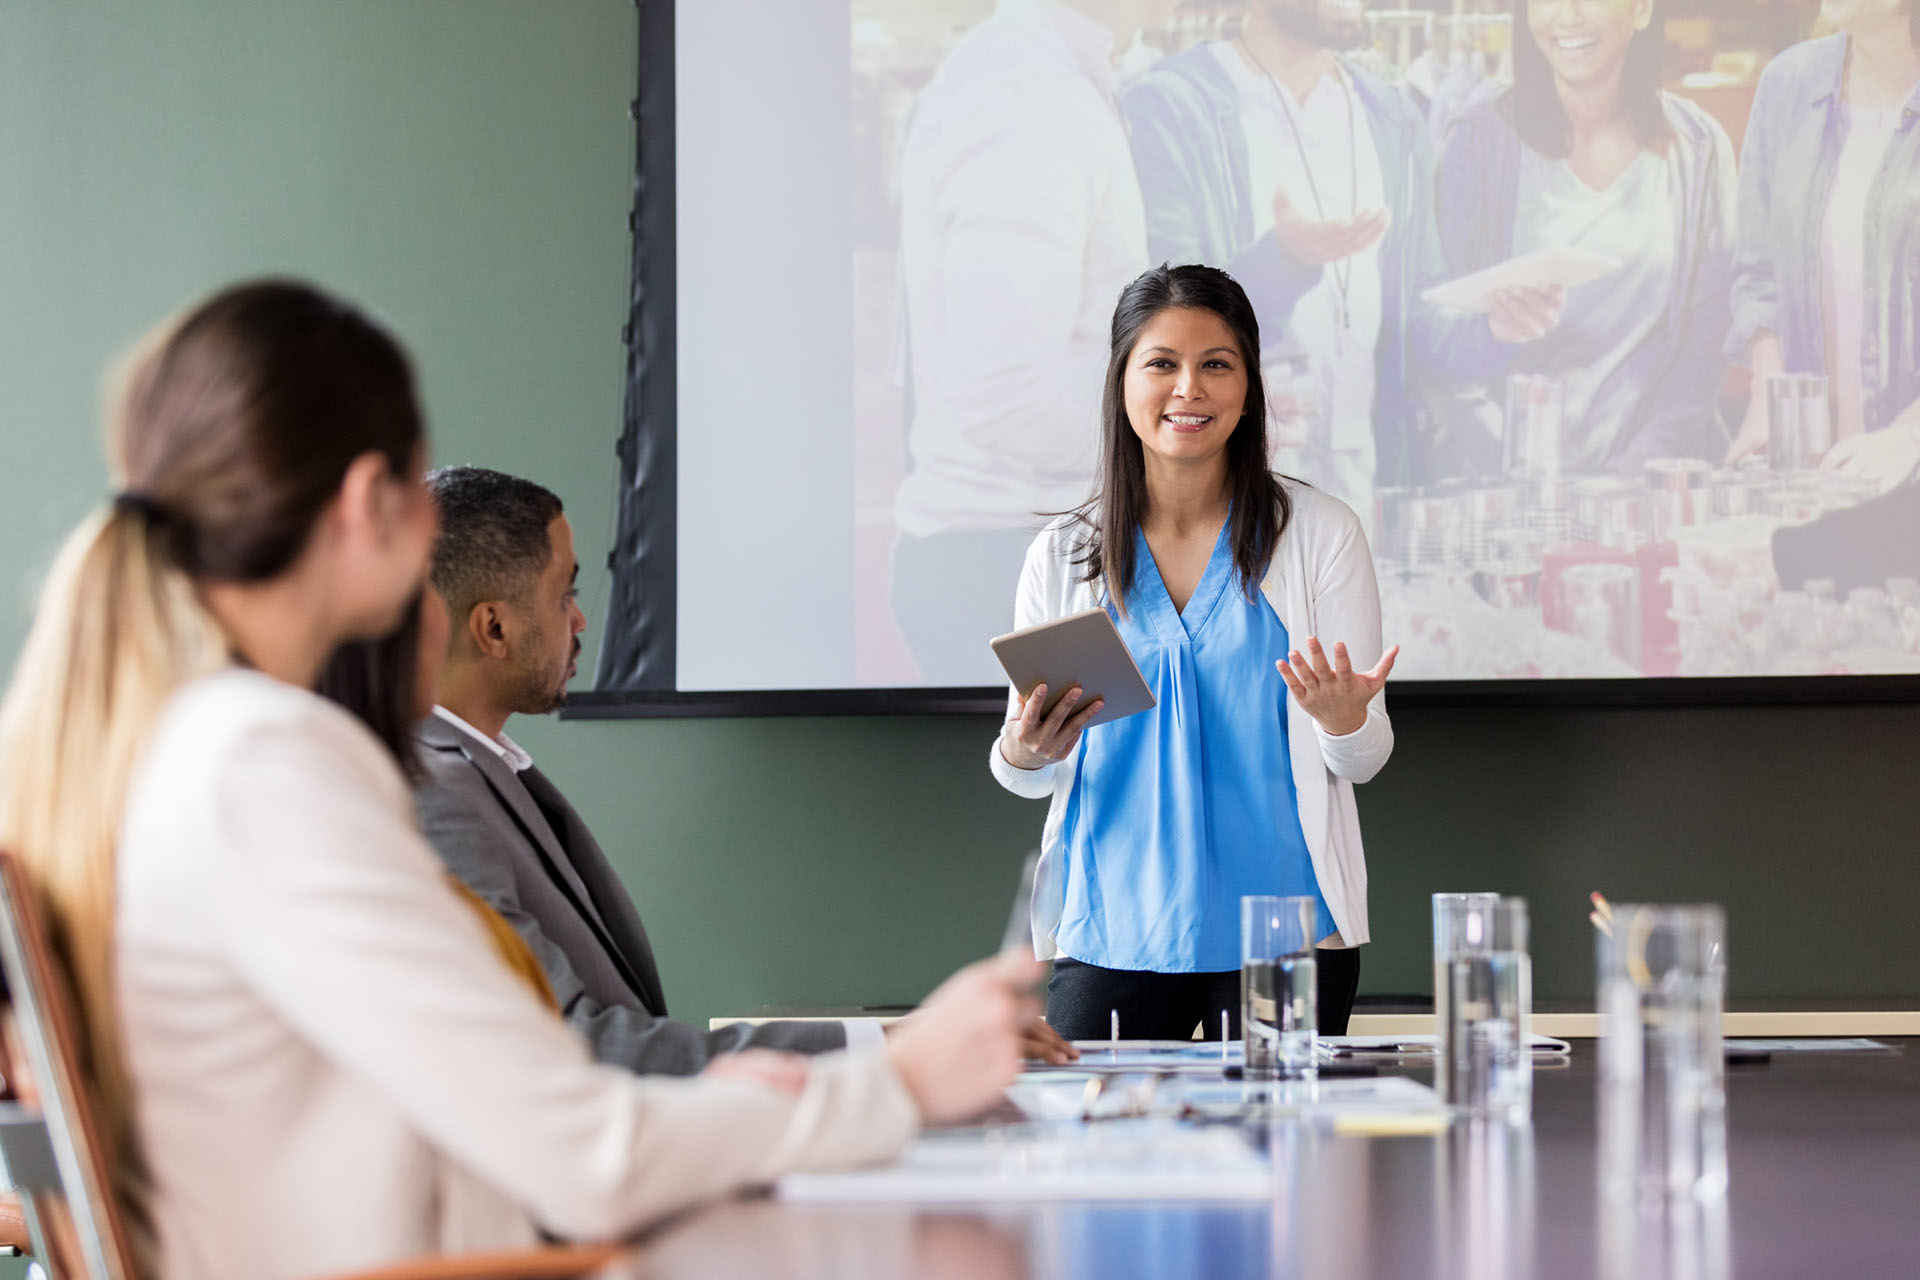 A woman gives a presentation during a committee meeting